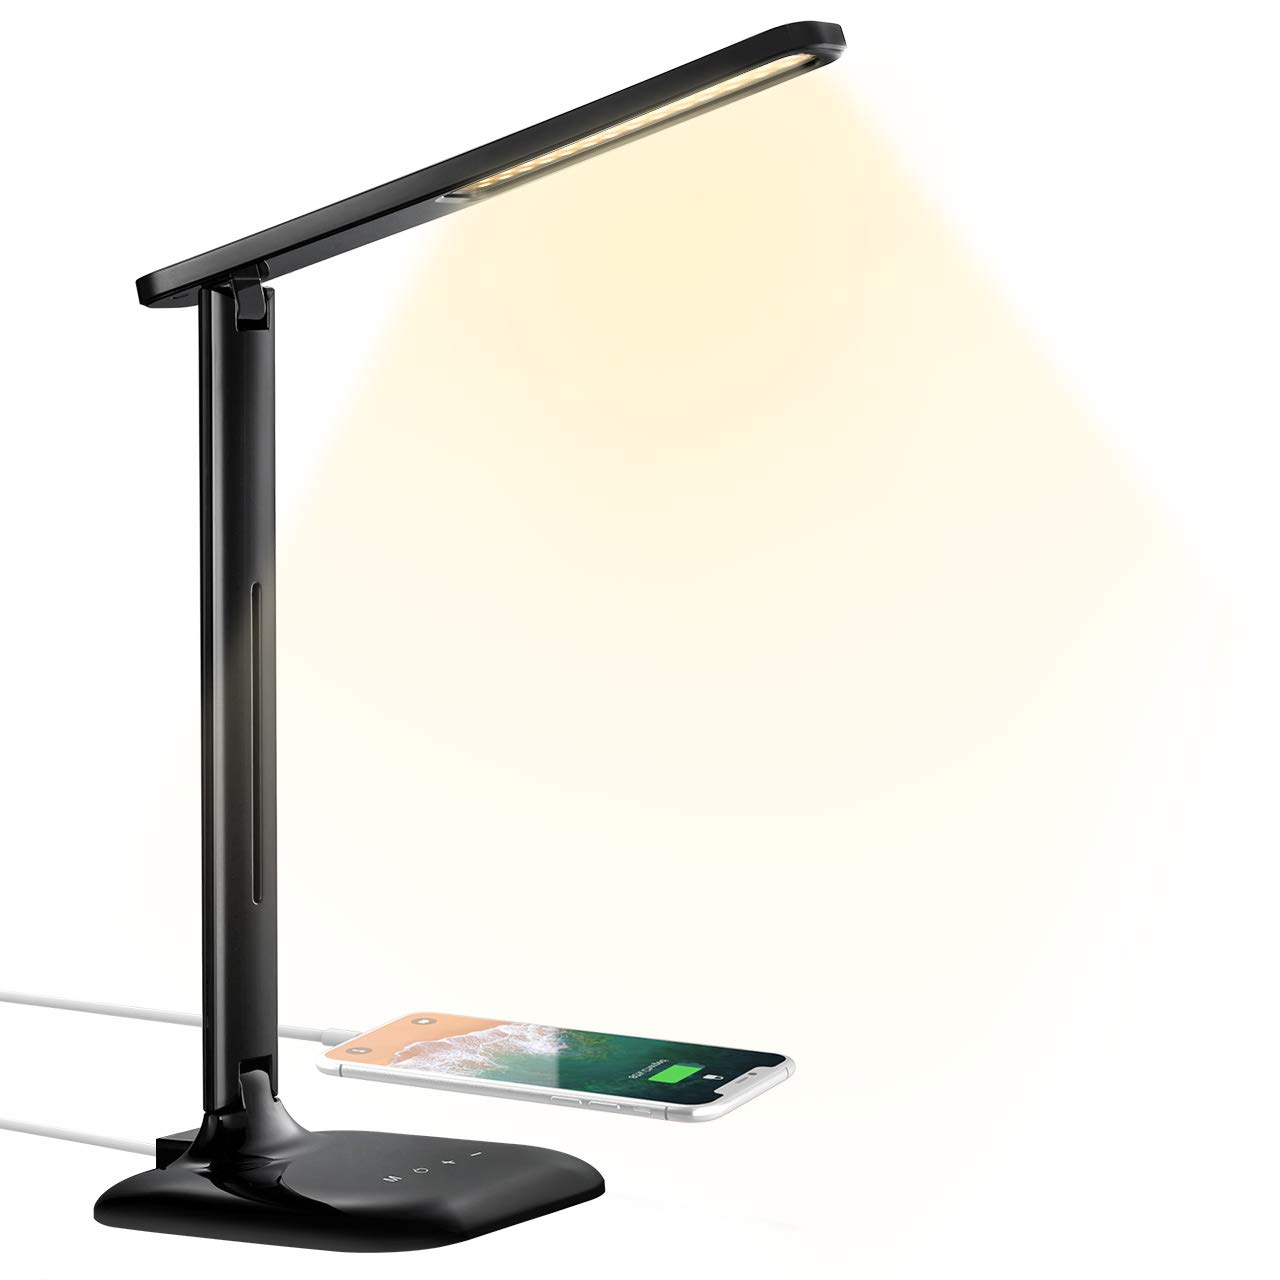 TOPELEK Eye-caring Bedside Table Lamps Dimmable Reading Desk Light